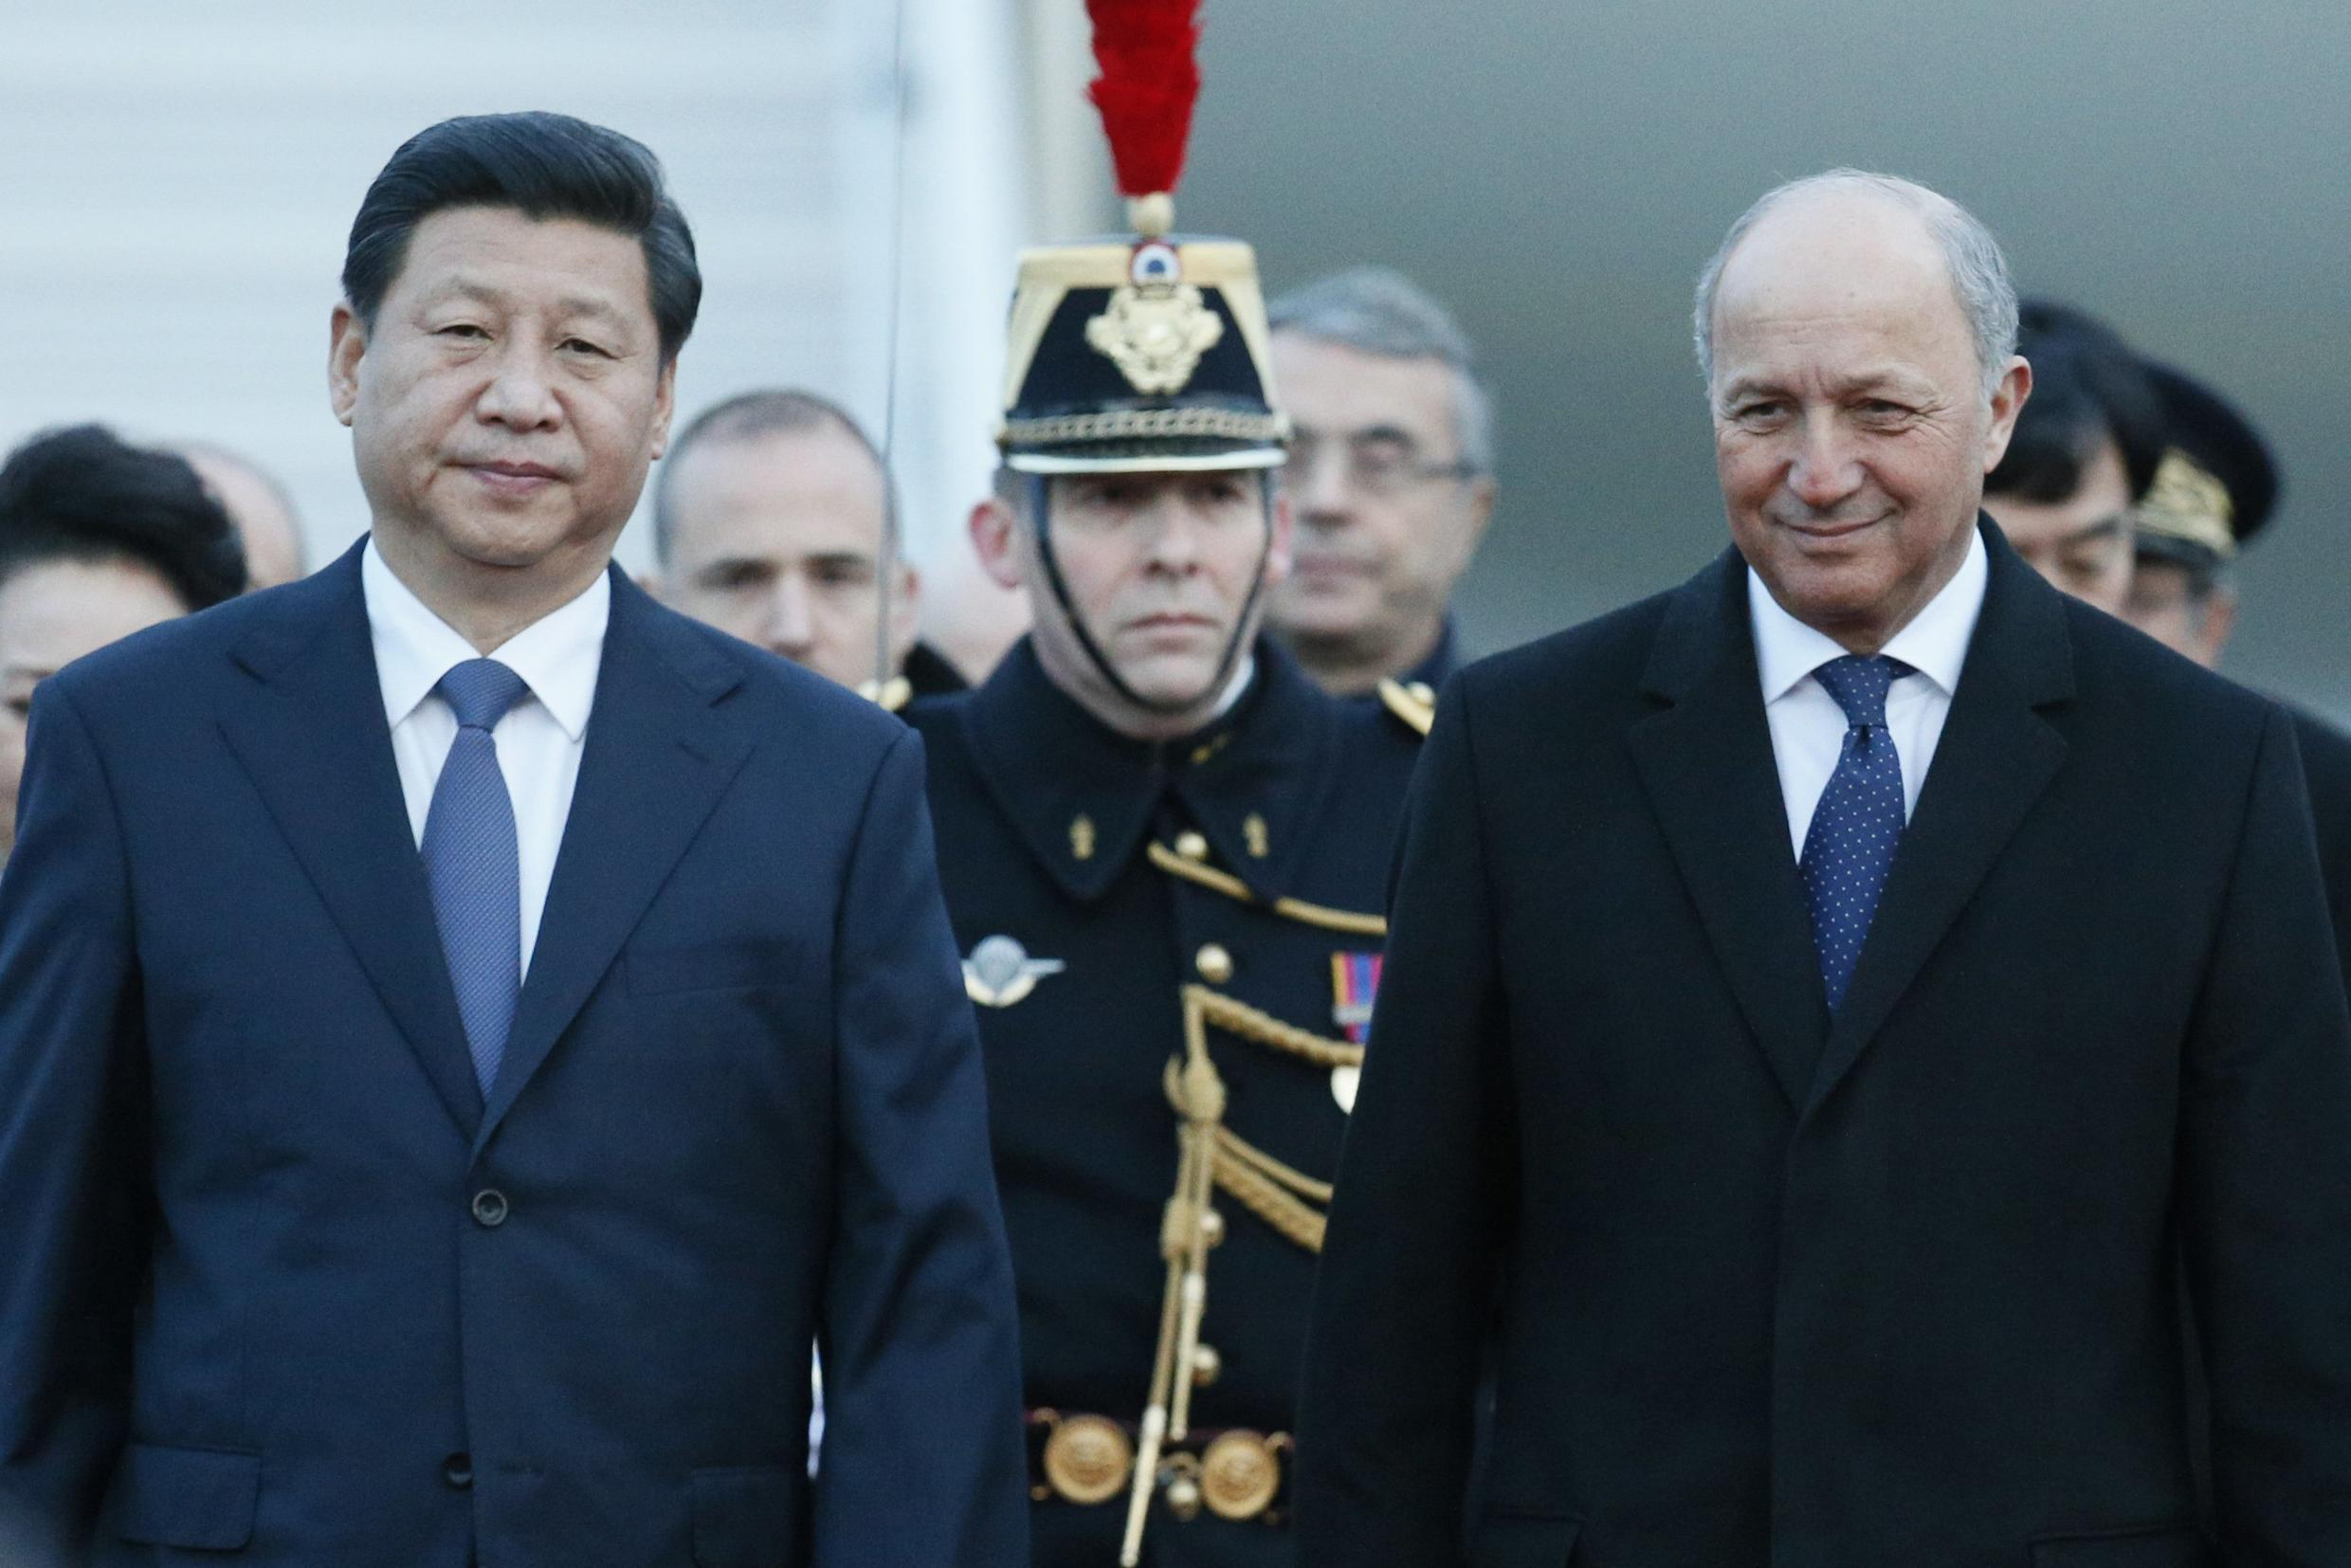 Chinese President Xi Jinping (left.) and the French Foreign Affairs minister Laurent Fabius, at the Lyon-Saint-Exupéry airport, March 25 2014.